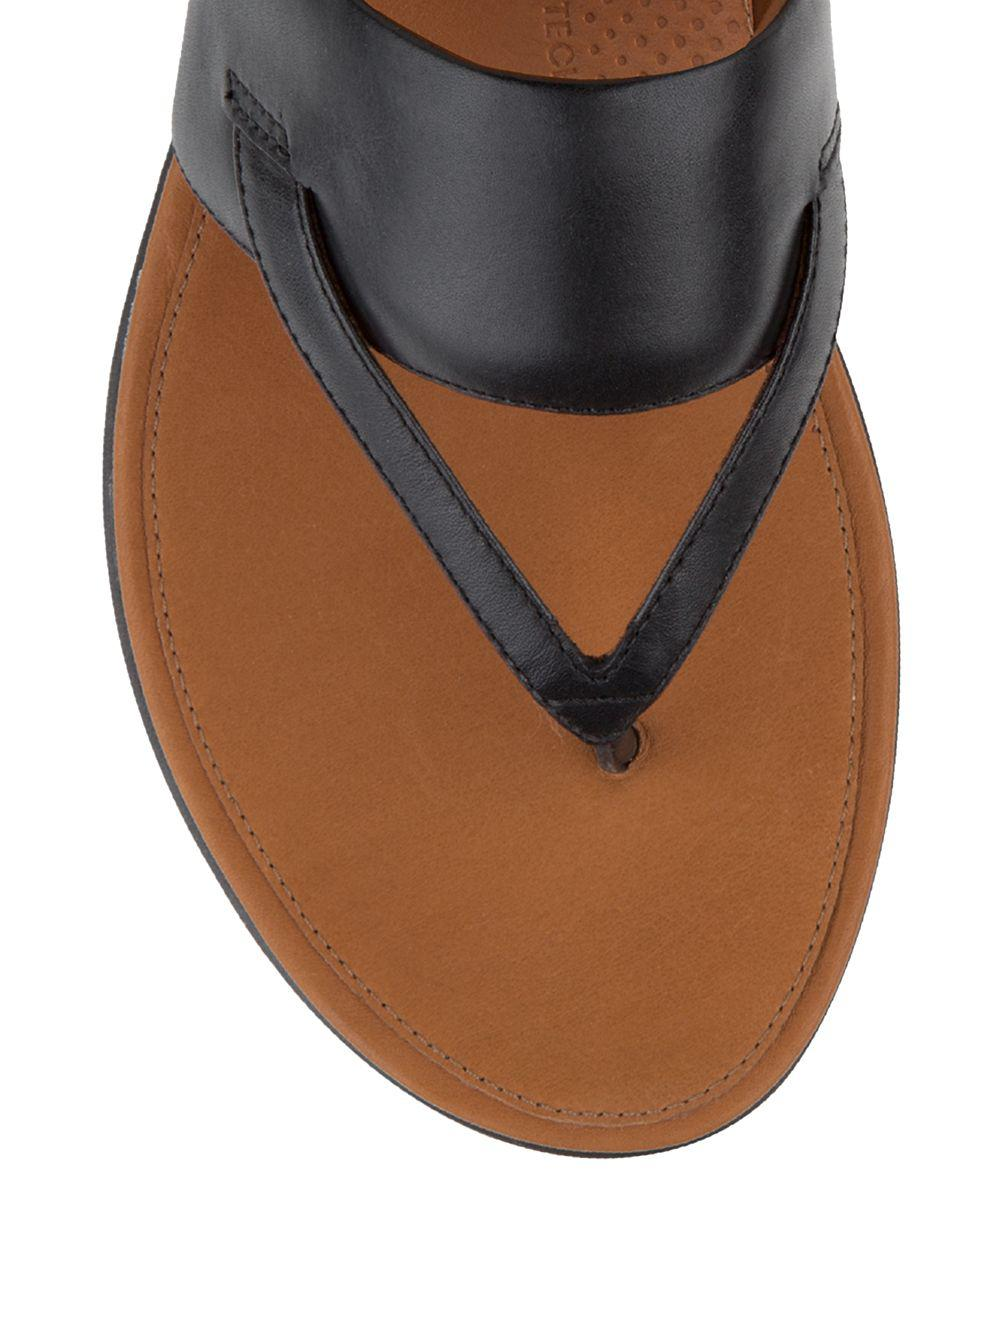 c64e8baee Lyst - Fitflop Delta Tm Leather Thong Sandals in Black